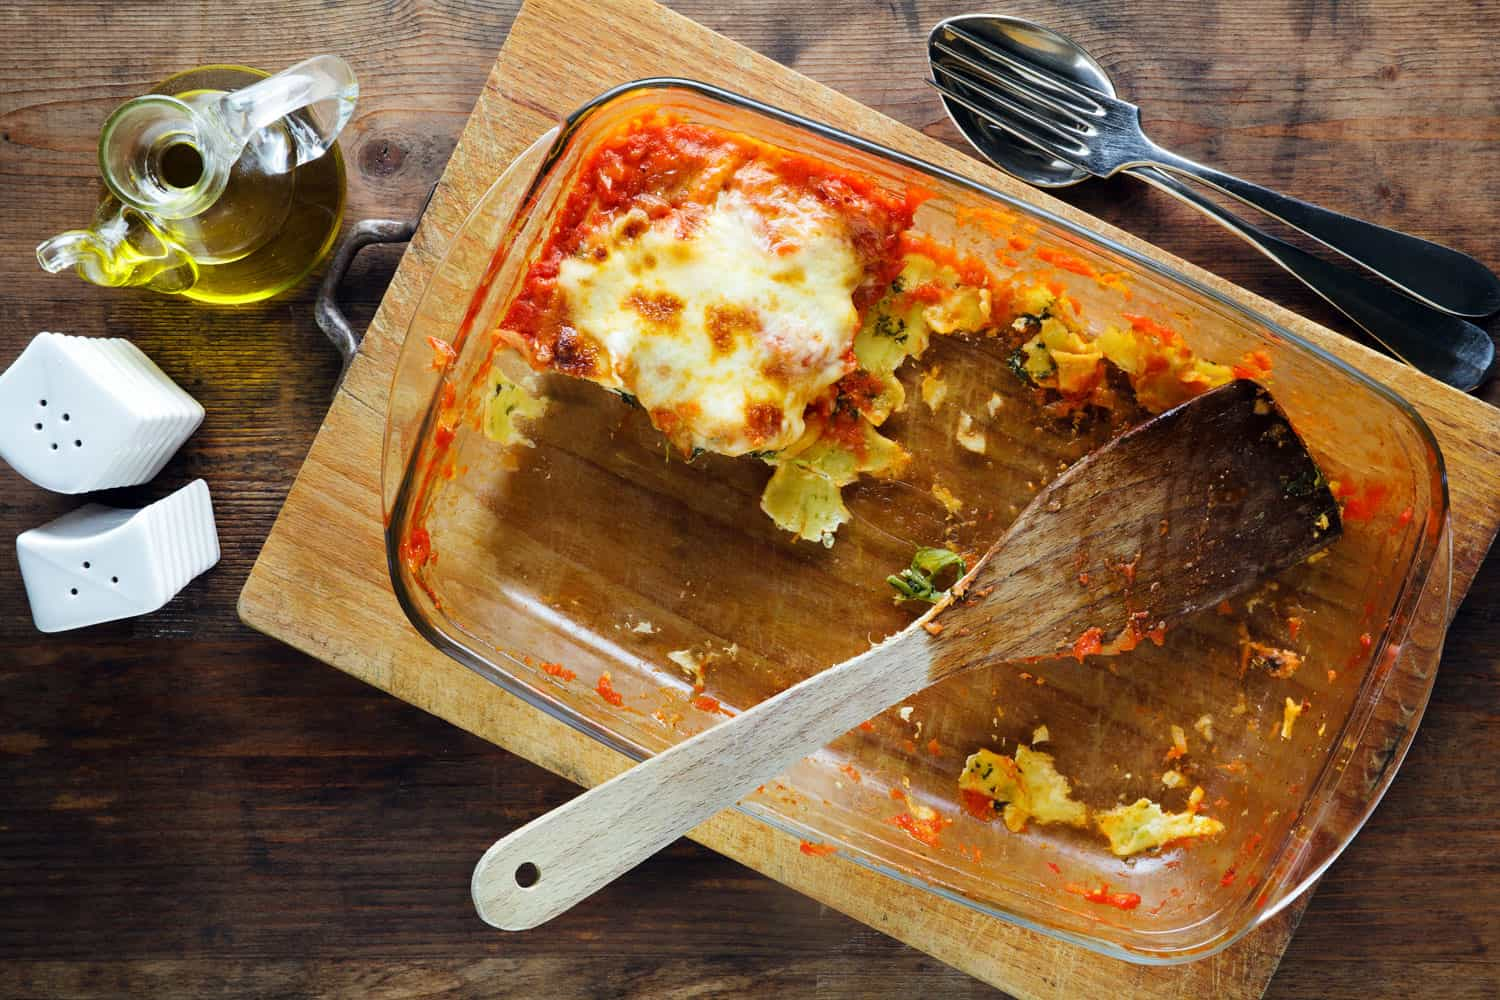 A last piece of lasagna on a glass pyrex